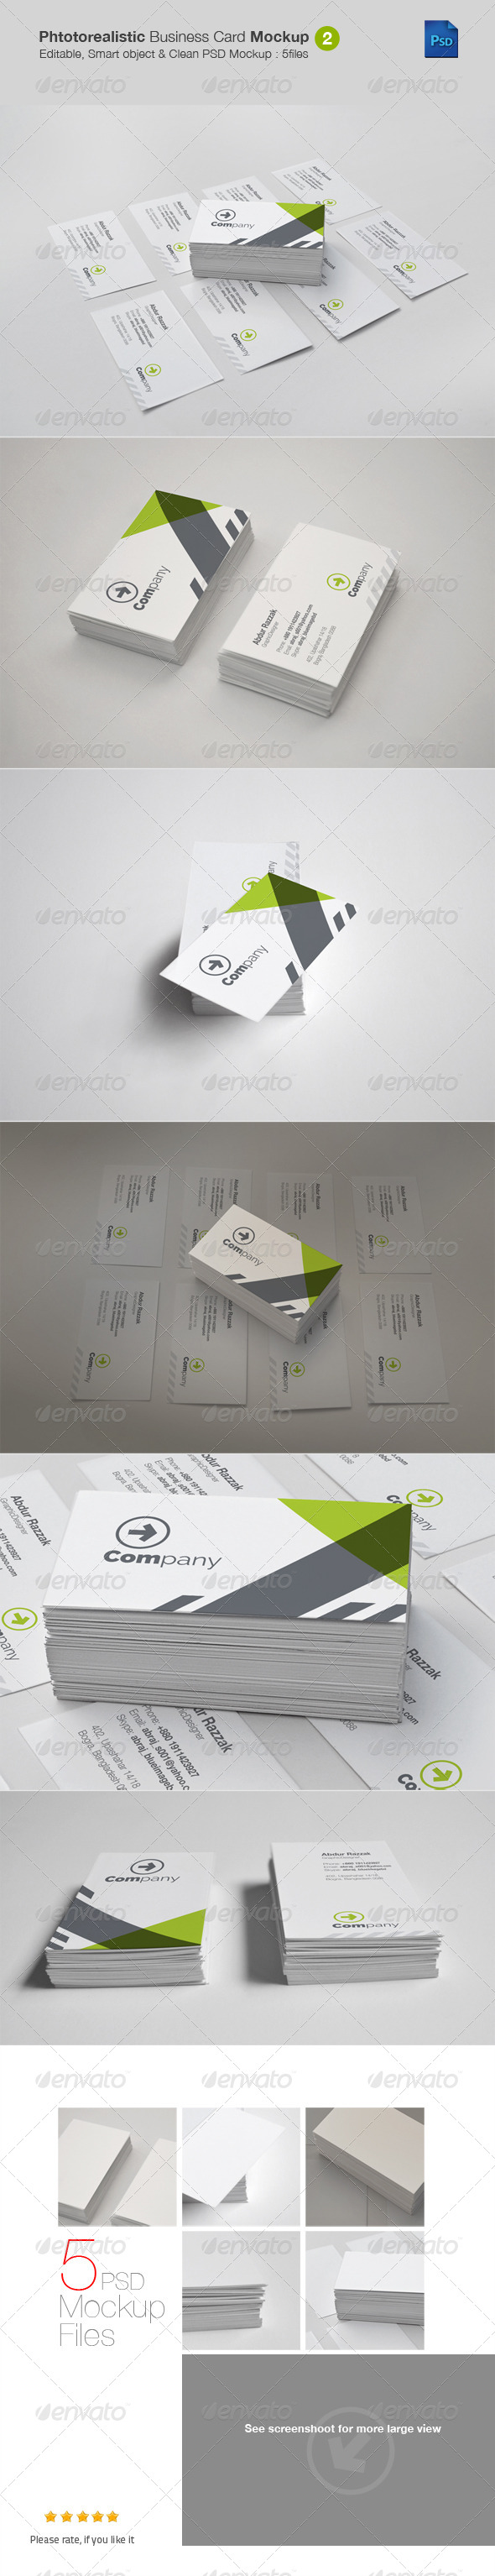 Photorealistic Business Card Mockup v2 - Business Cards Print